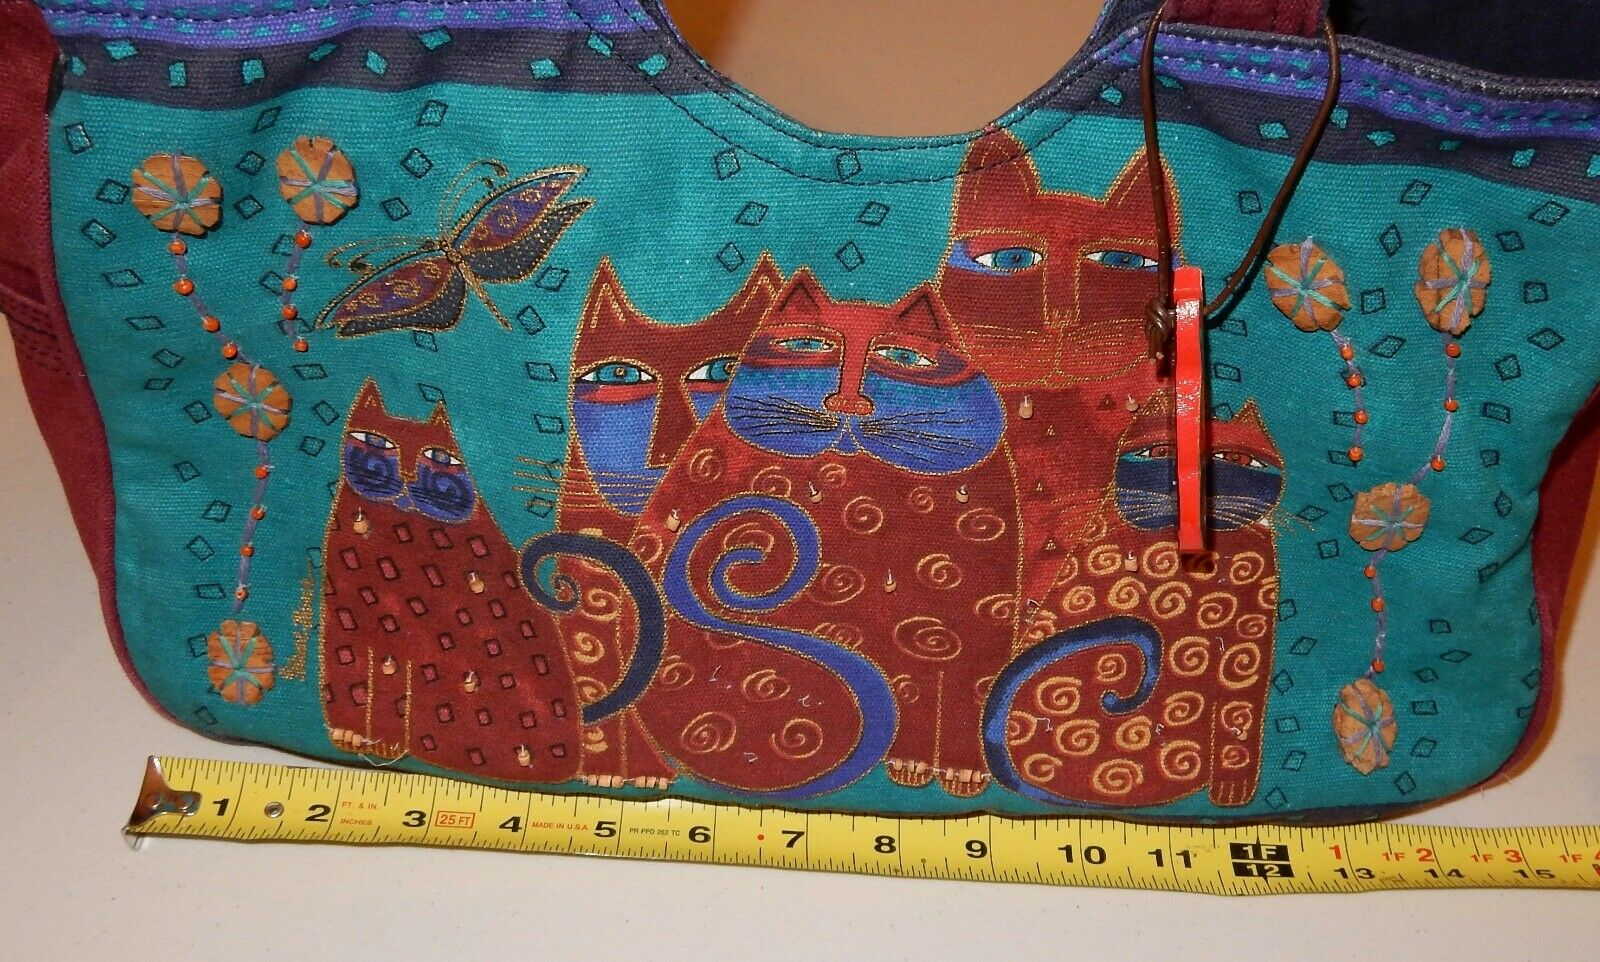 Laurel Burch Cat Tote Bag & Pouch Used - image 10